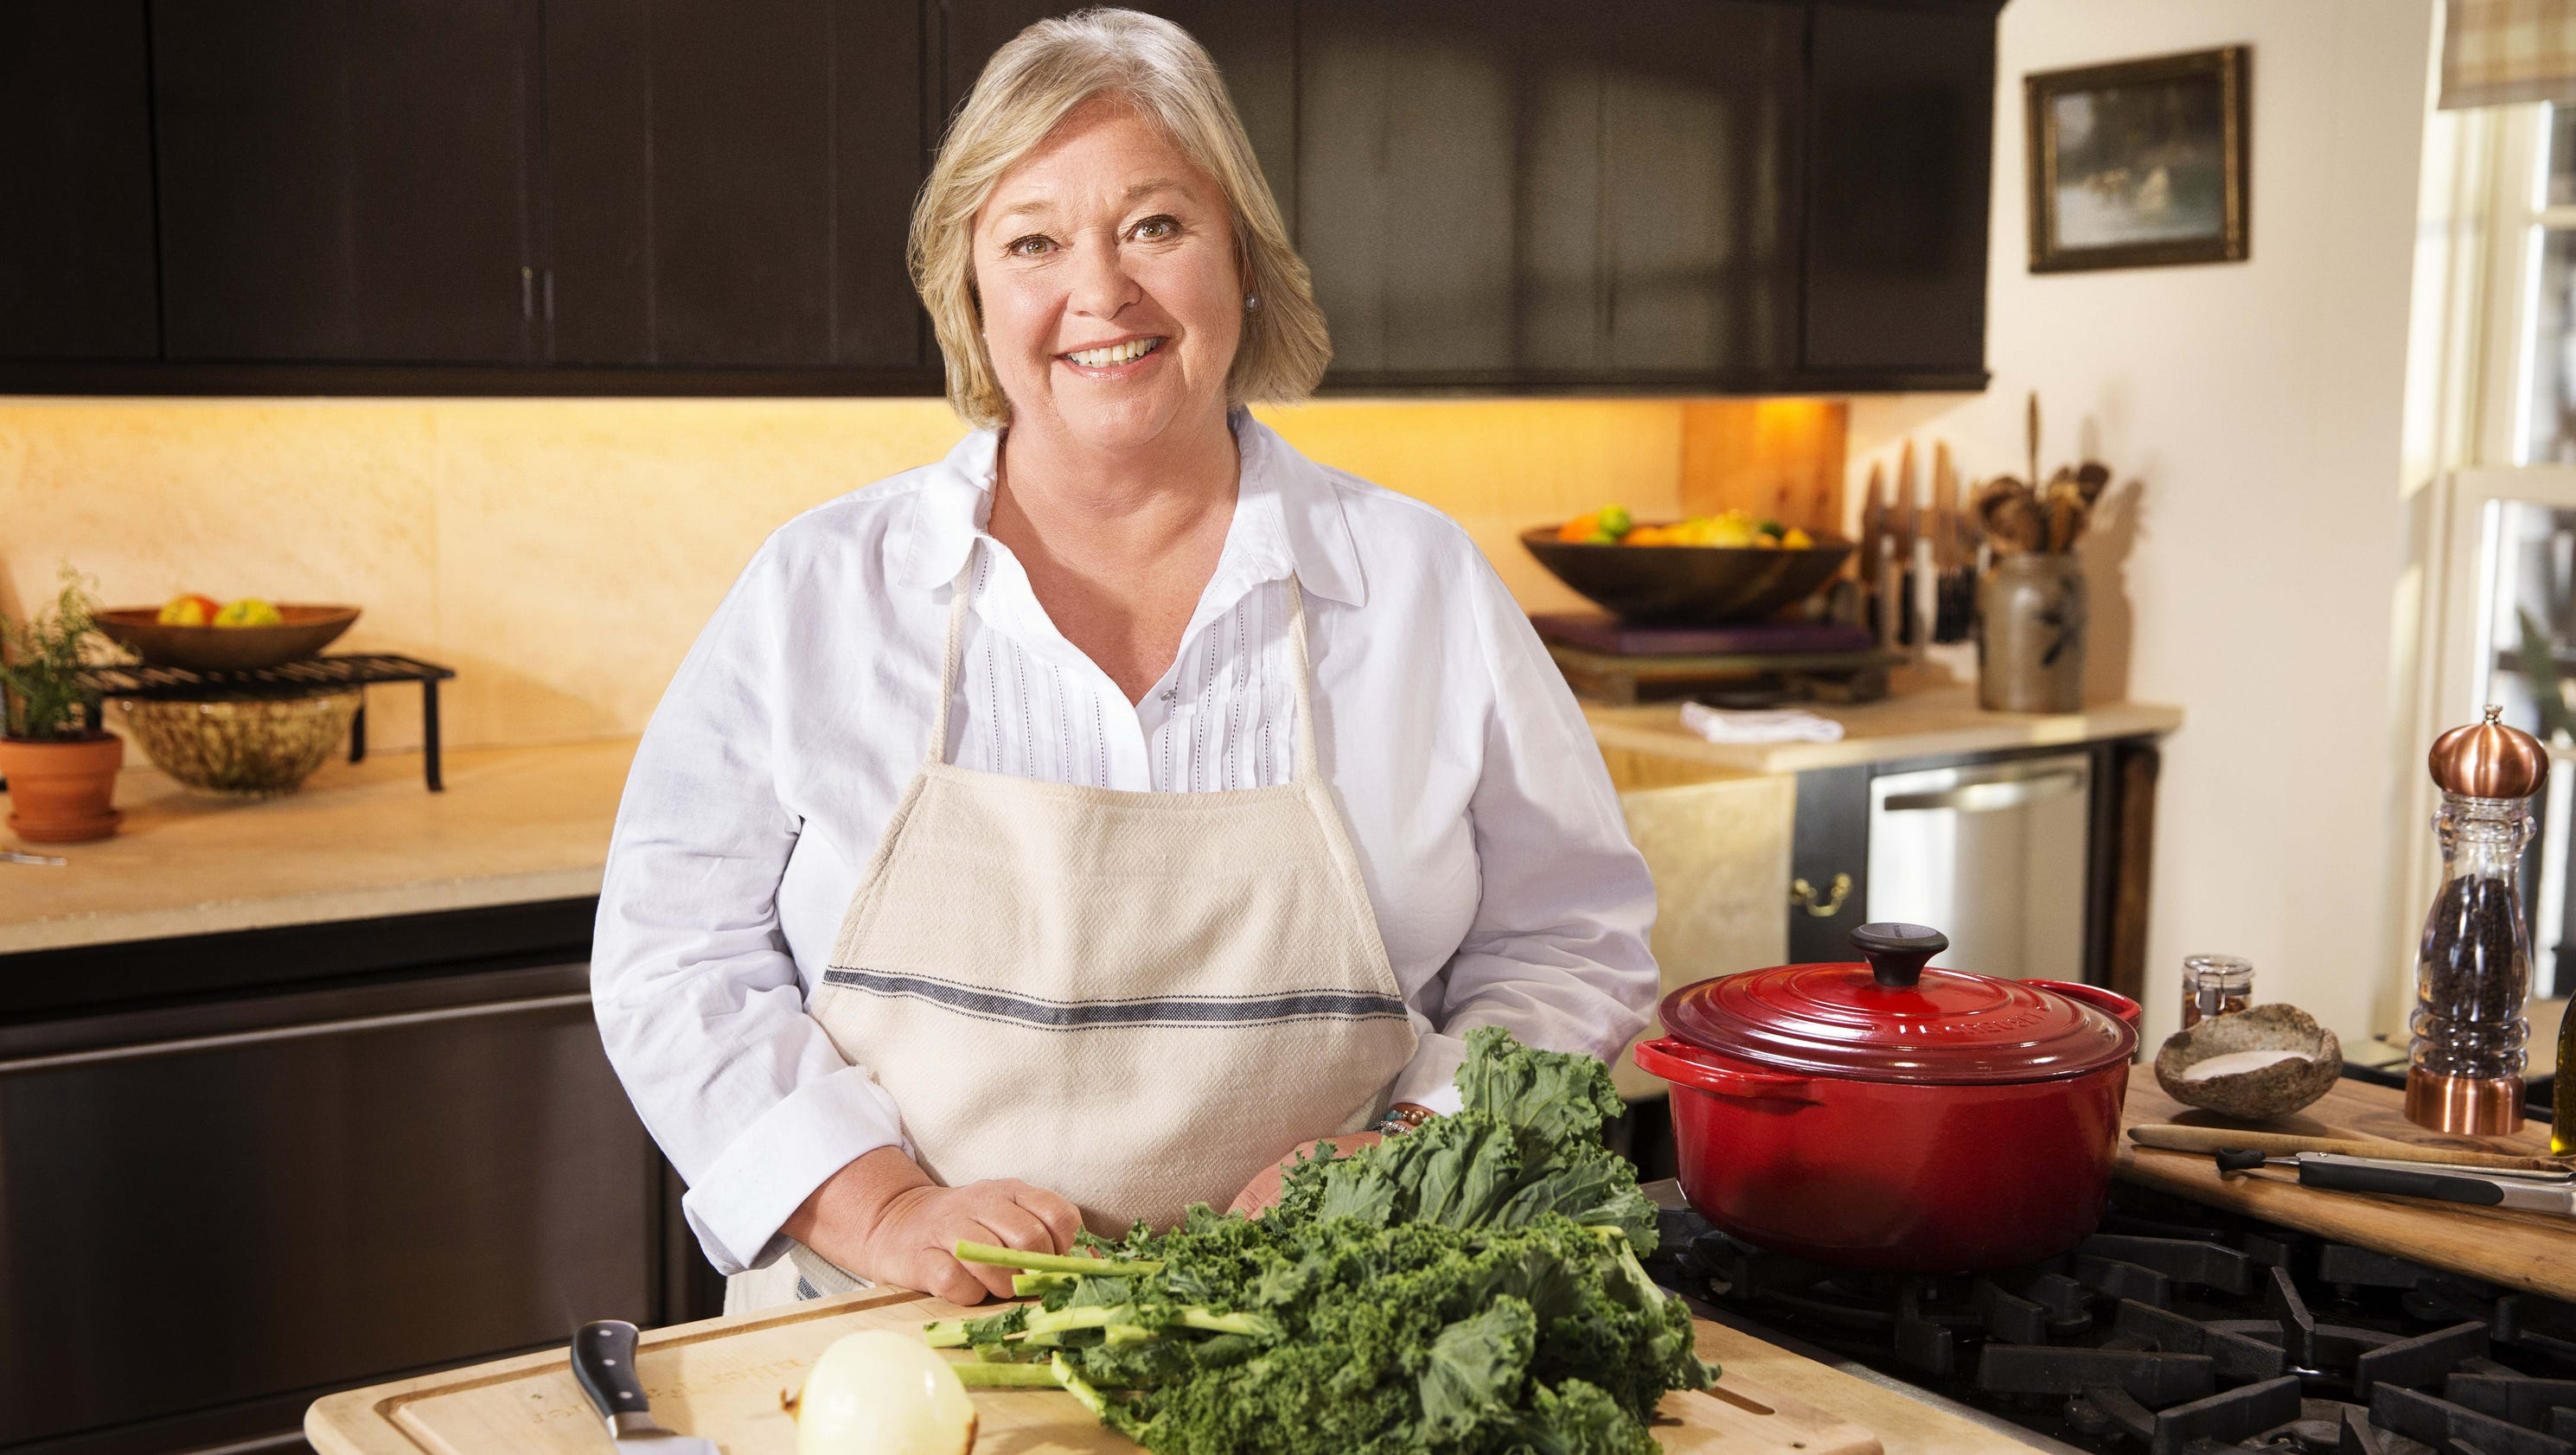 Thanksgiving 911 Food Network host tackles top cooking emergencies